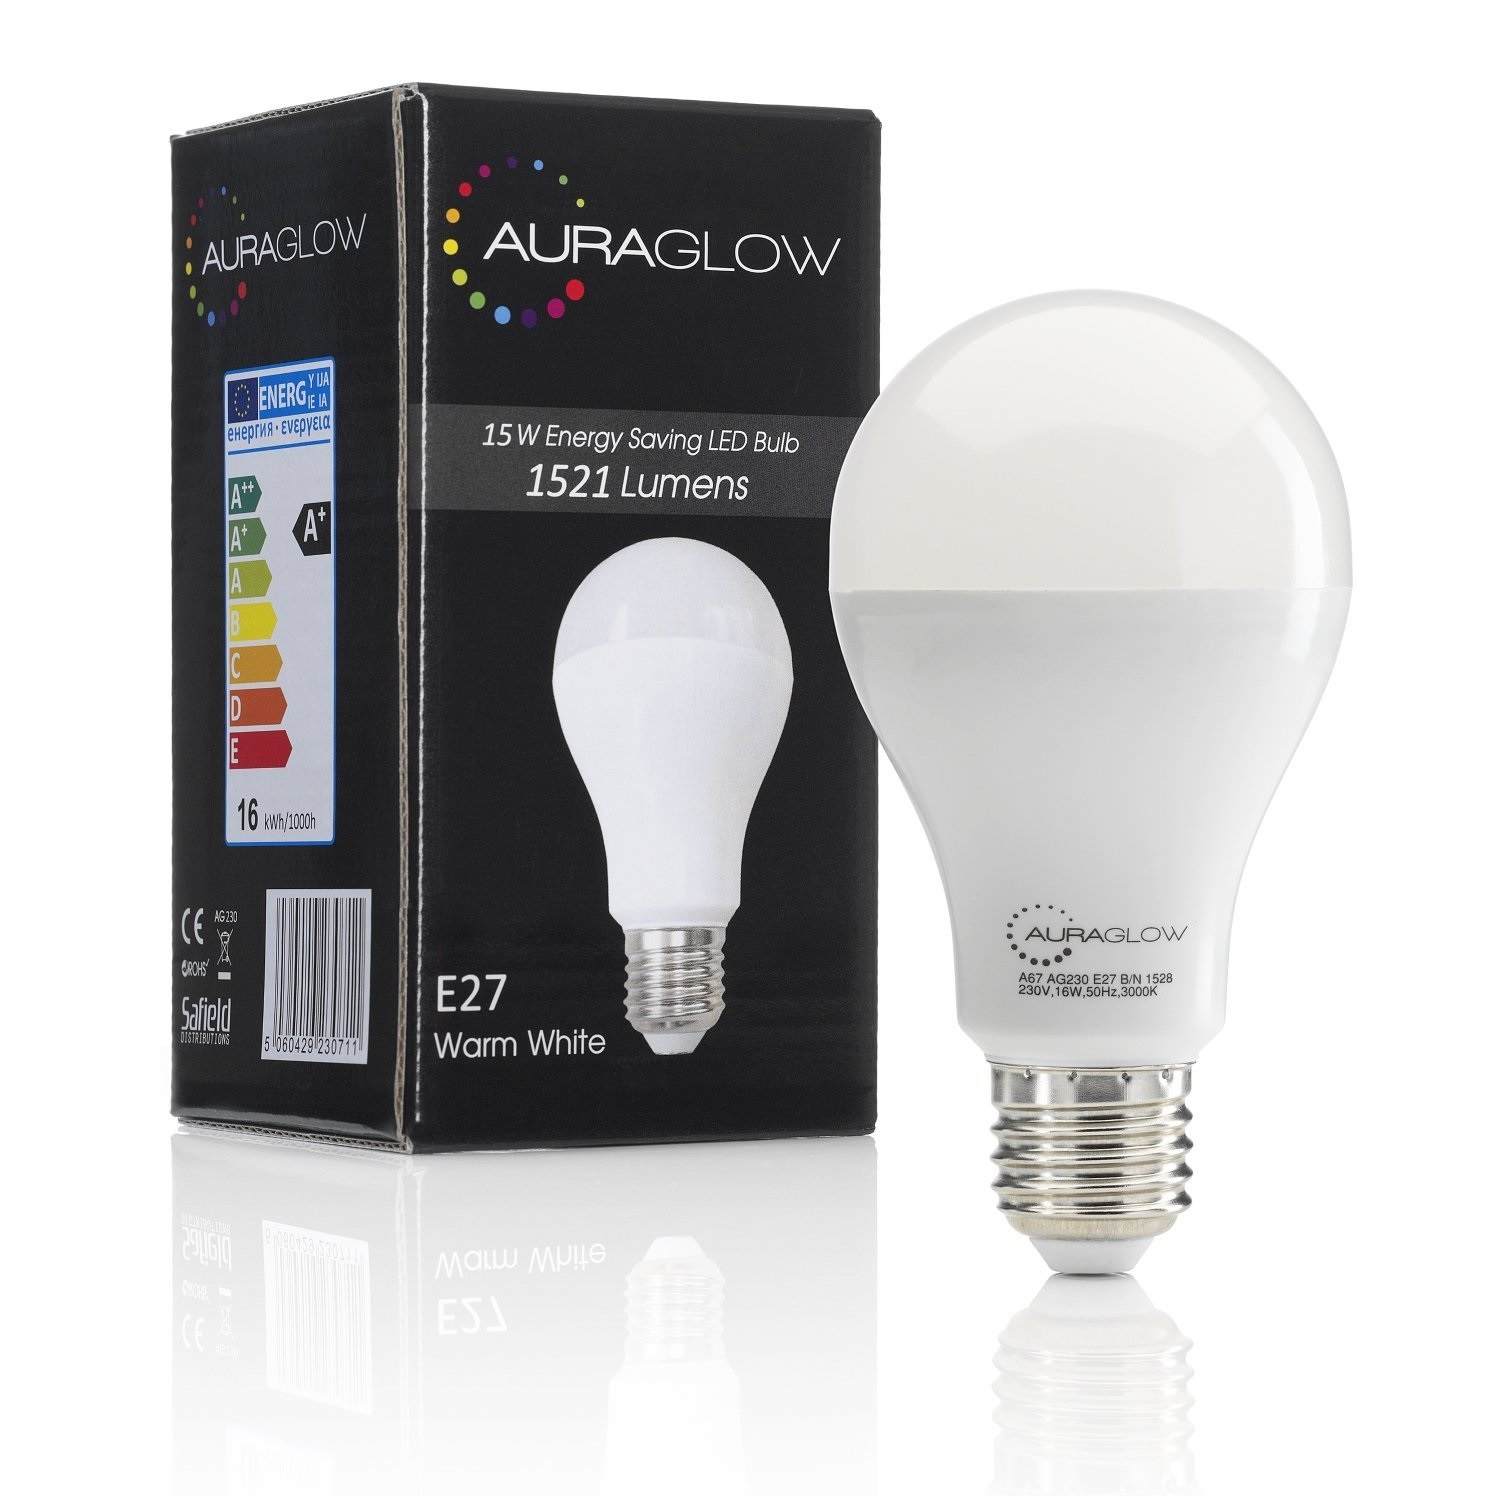 auraglow 15w led e27 screw light bulb warm white 1521 lumens 100w eqv ebay. Black Bedroom Furniture Sets. Home Design Ideas